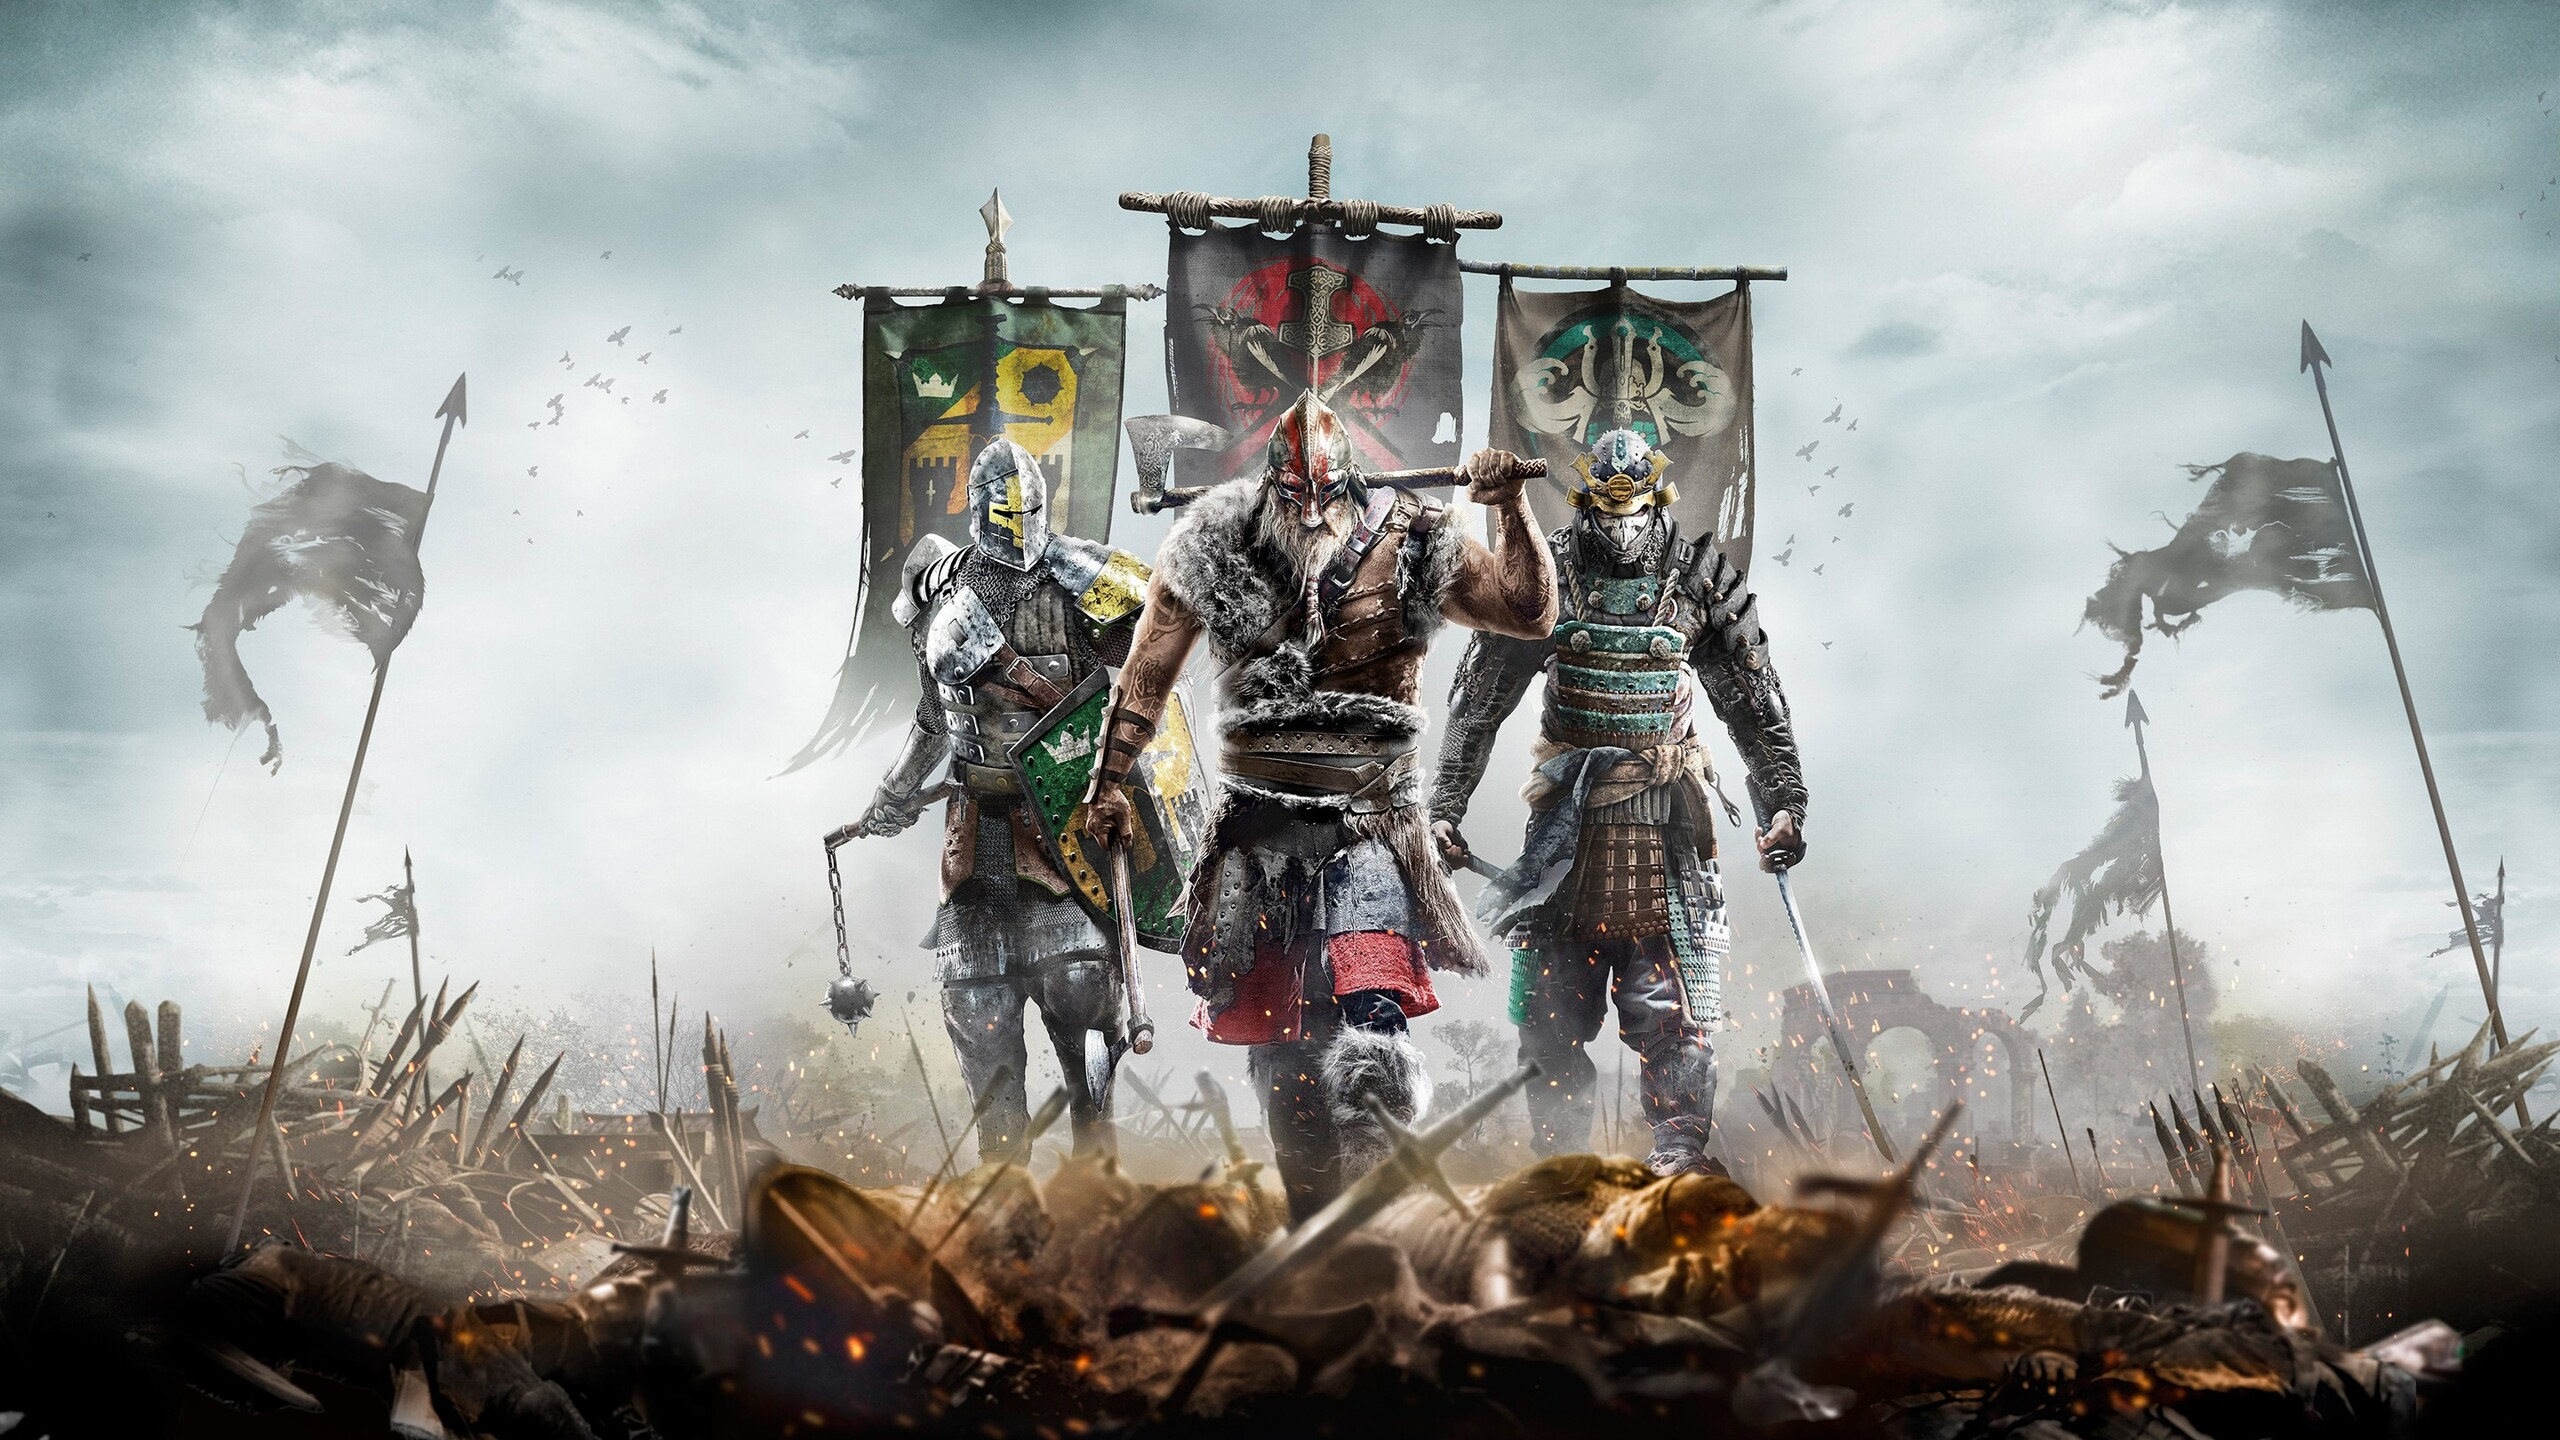 2560x1440 for honor game 1440p resolution hd 4k wallpapers, images